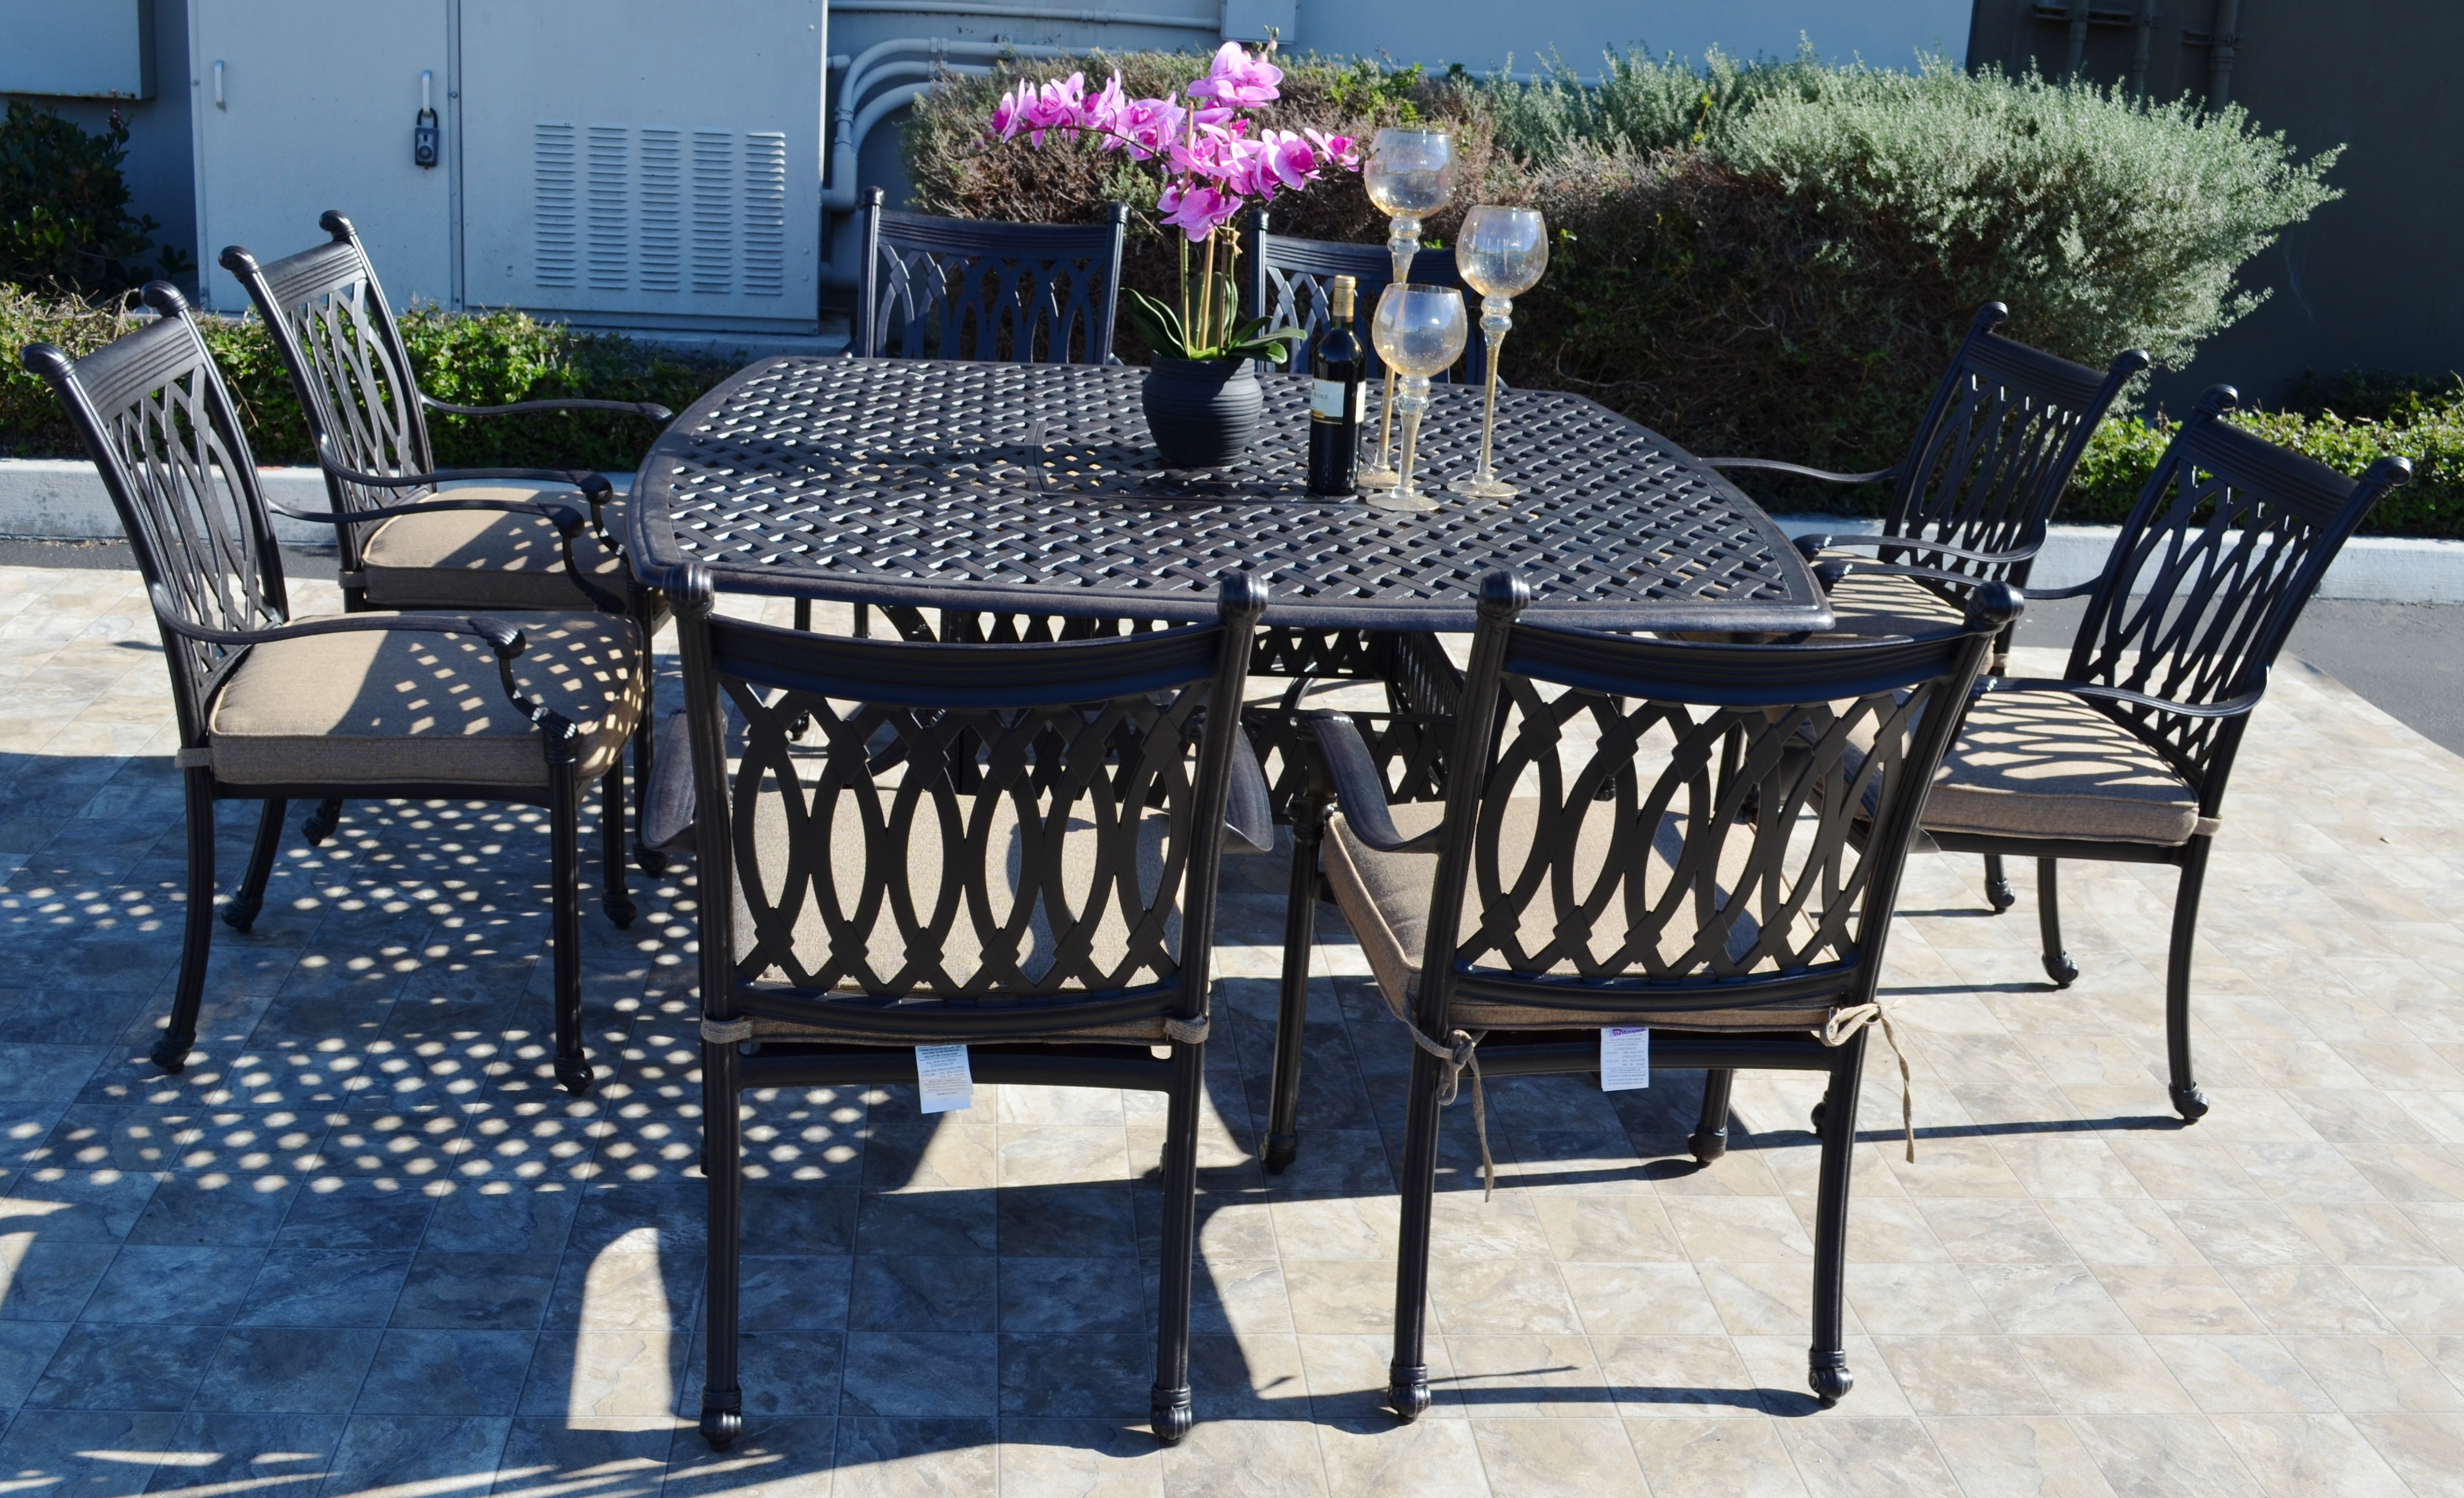 Grand Tuscany 9 Piece Dining Set: 8 Dining Chairs, 1 Square Dining Table 64""